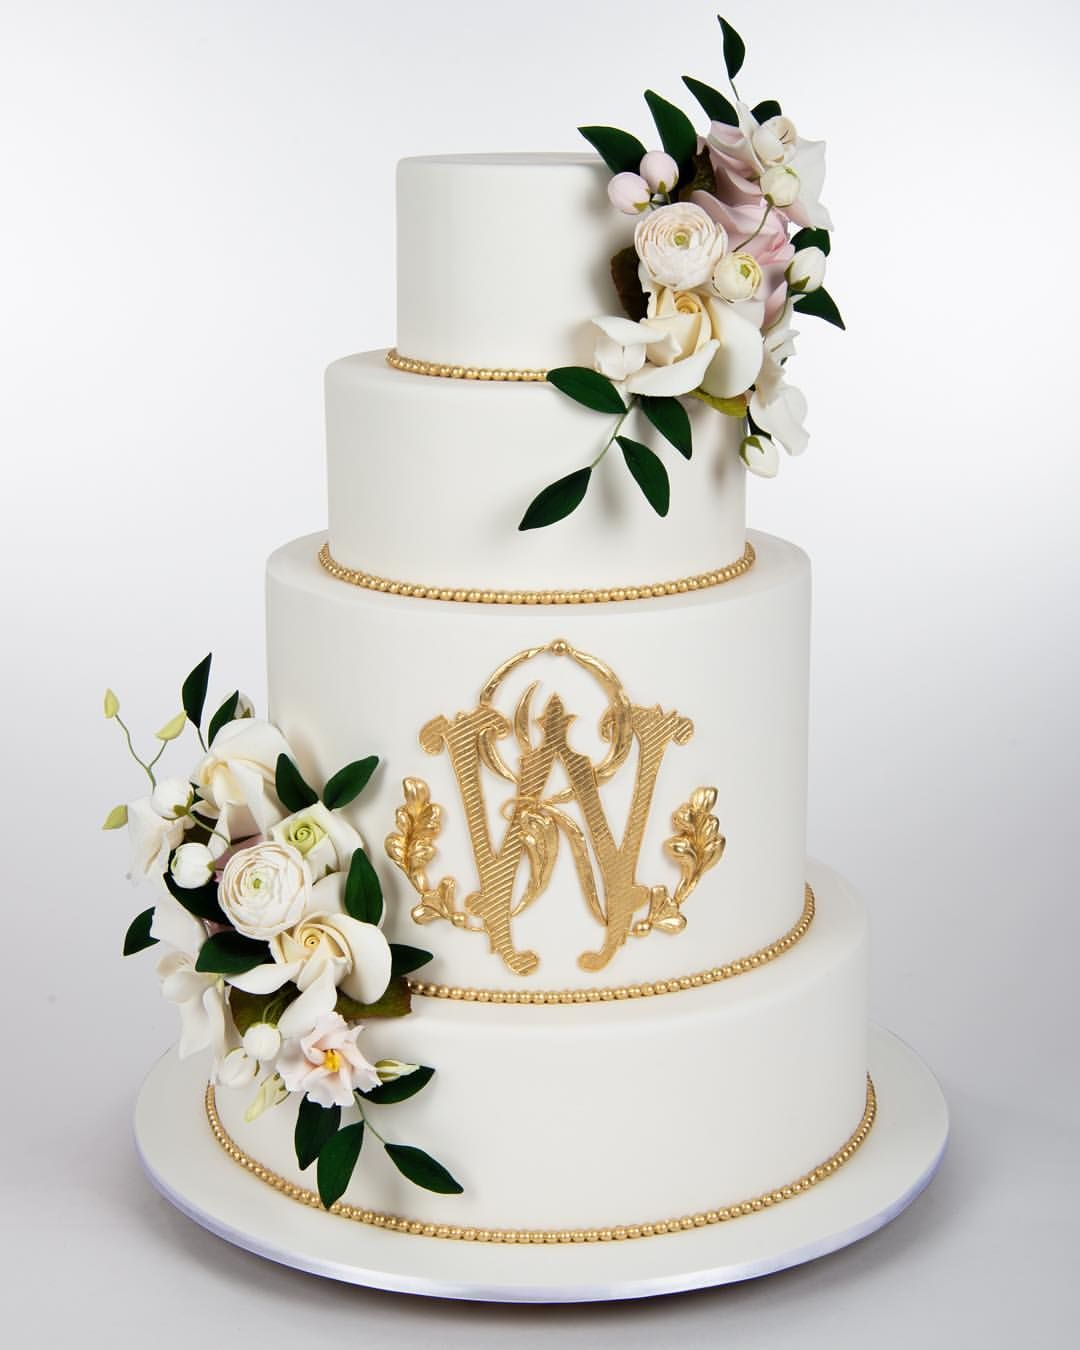 Ron benisrael cakes on instagram uccongratulations to rachel and